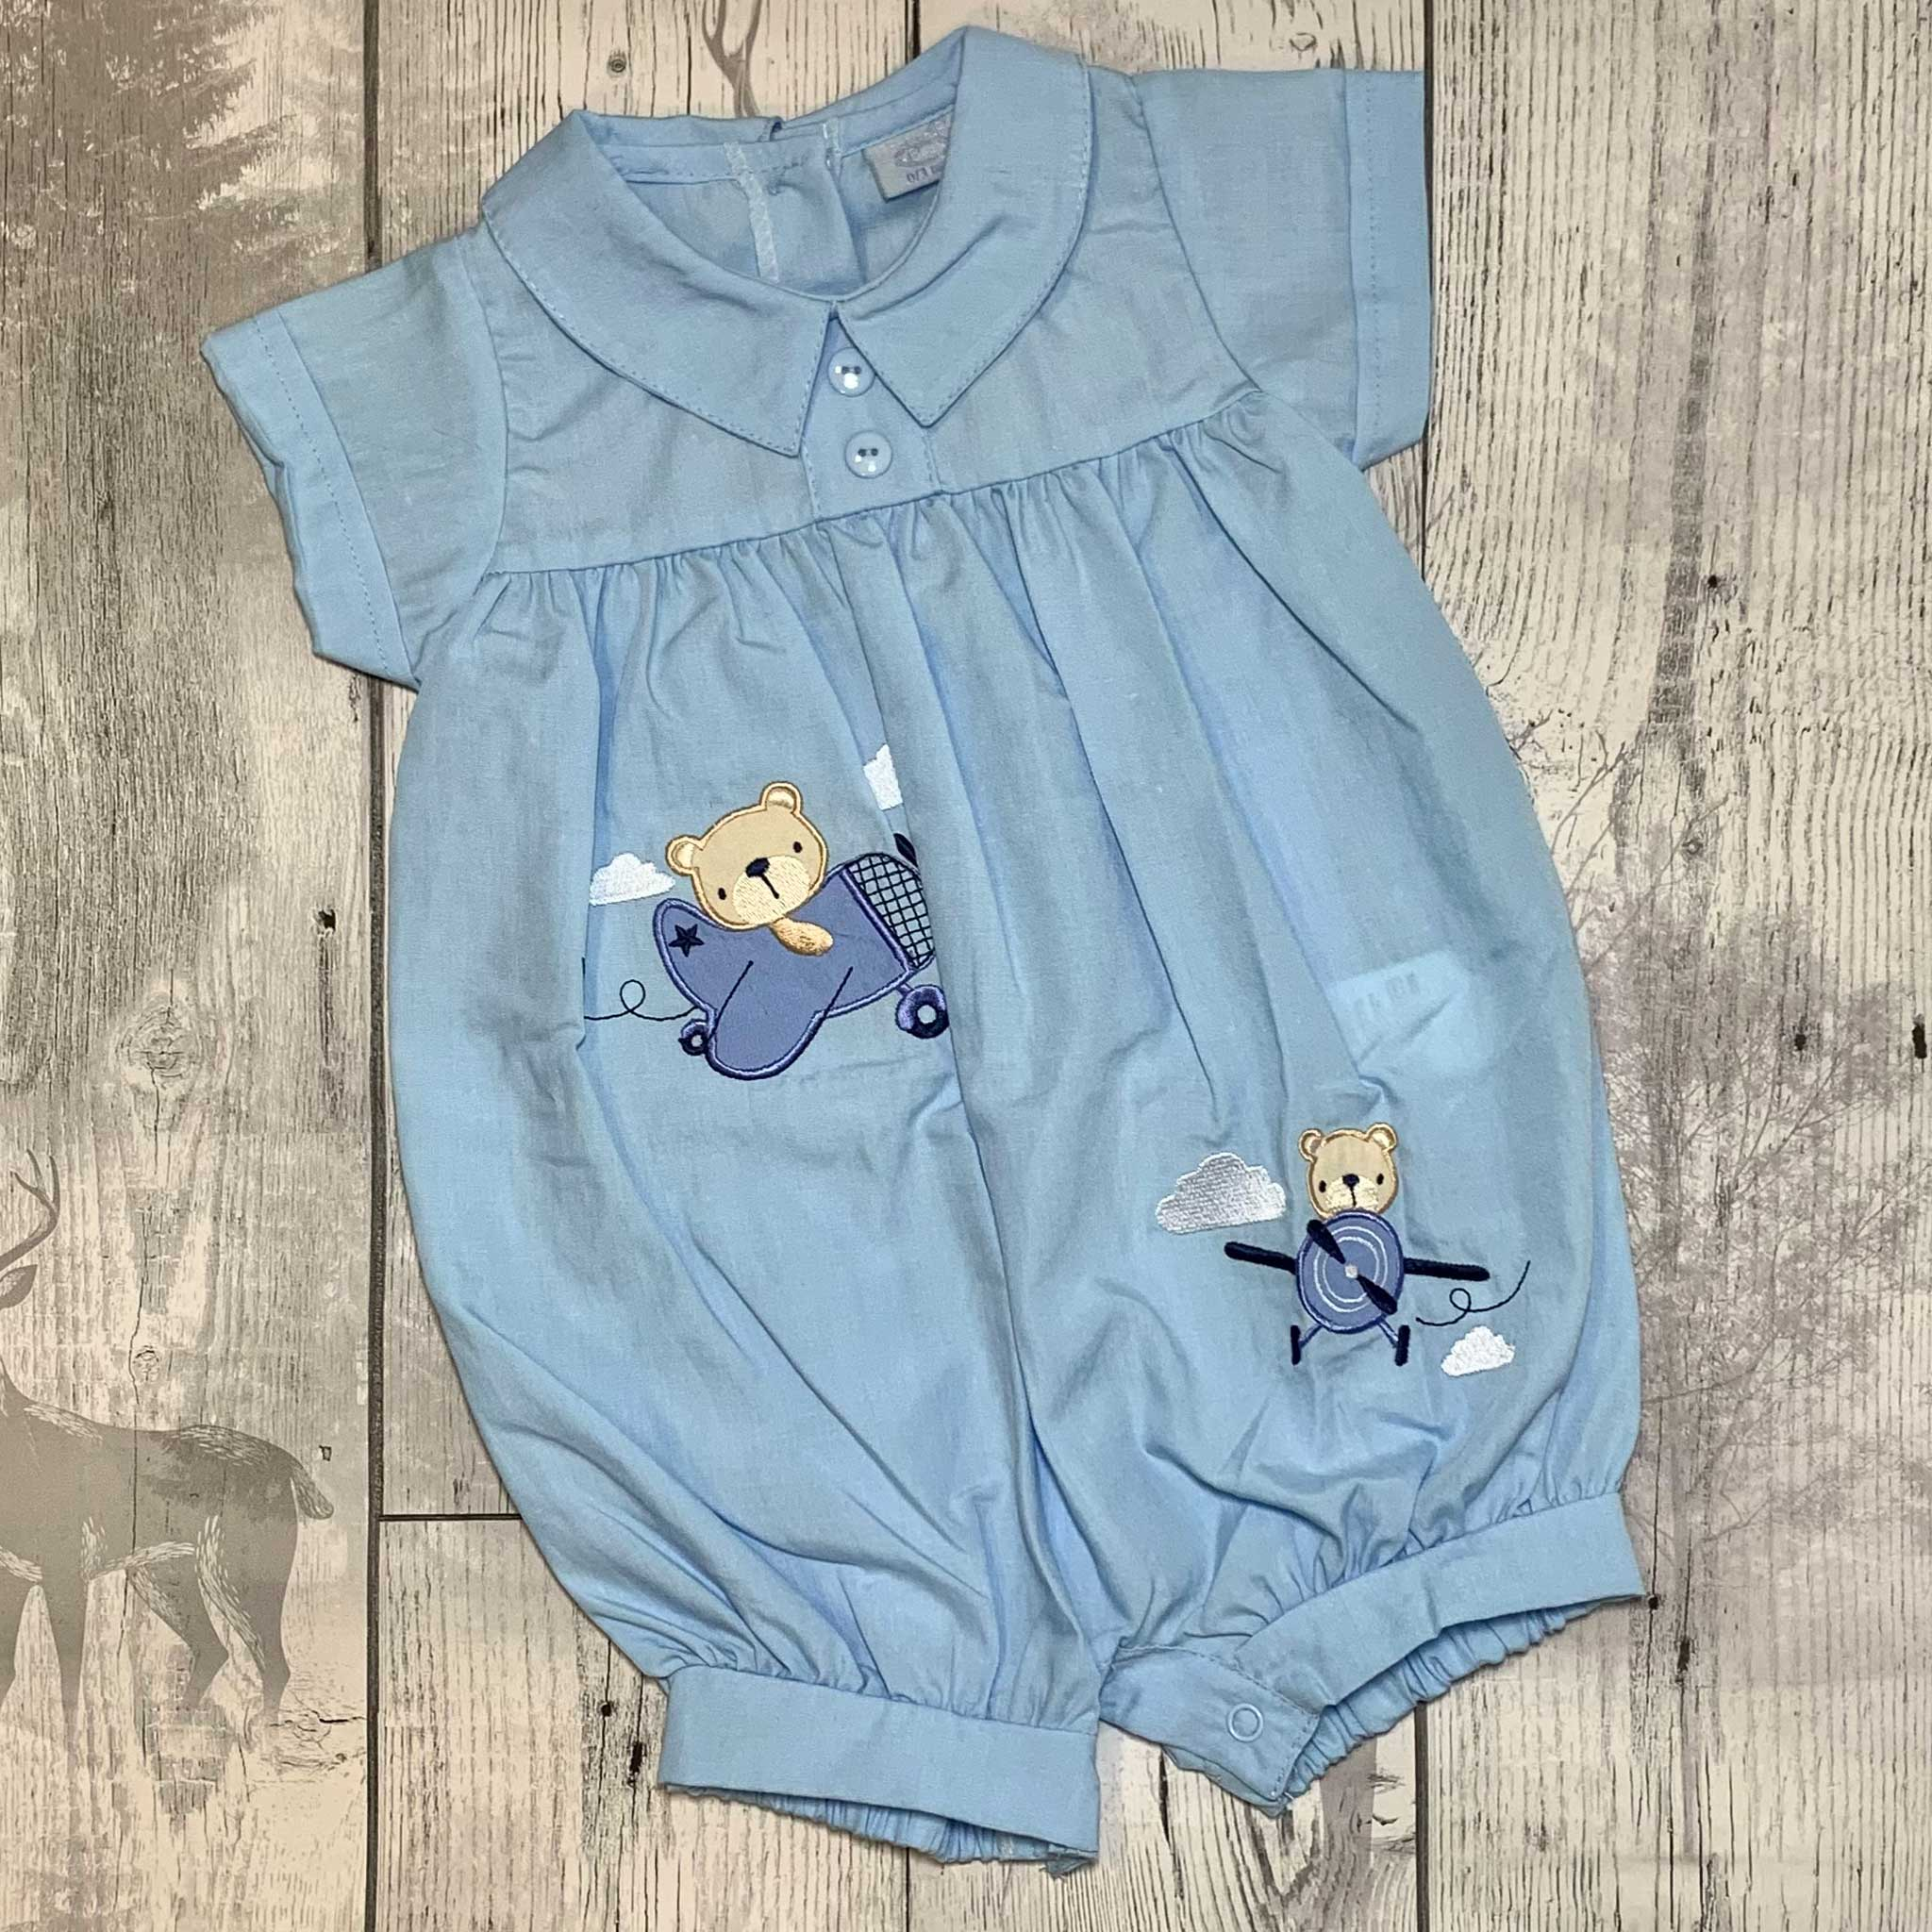 Baby Boys Blue Romper with Applique Bears